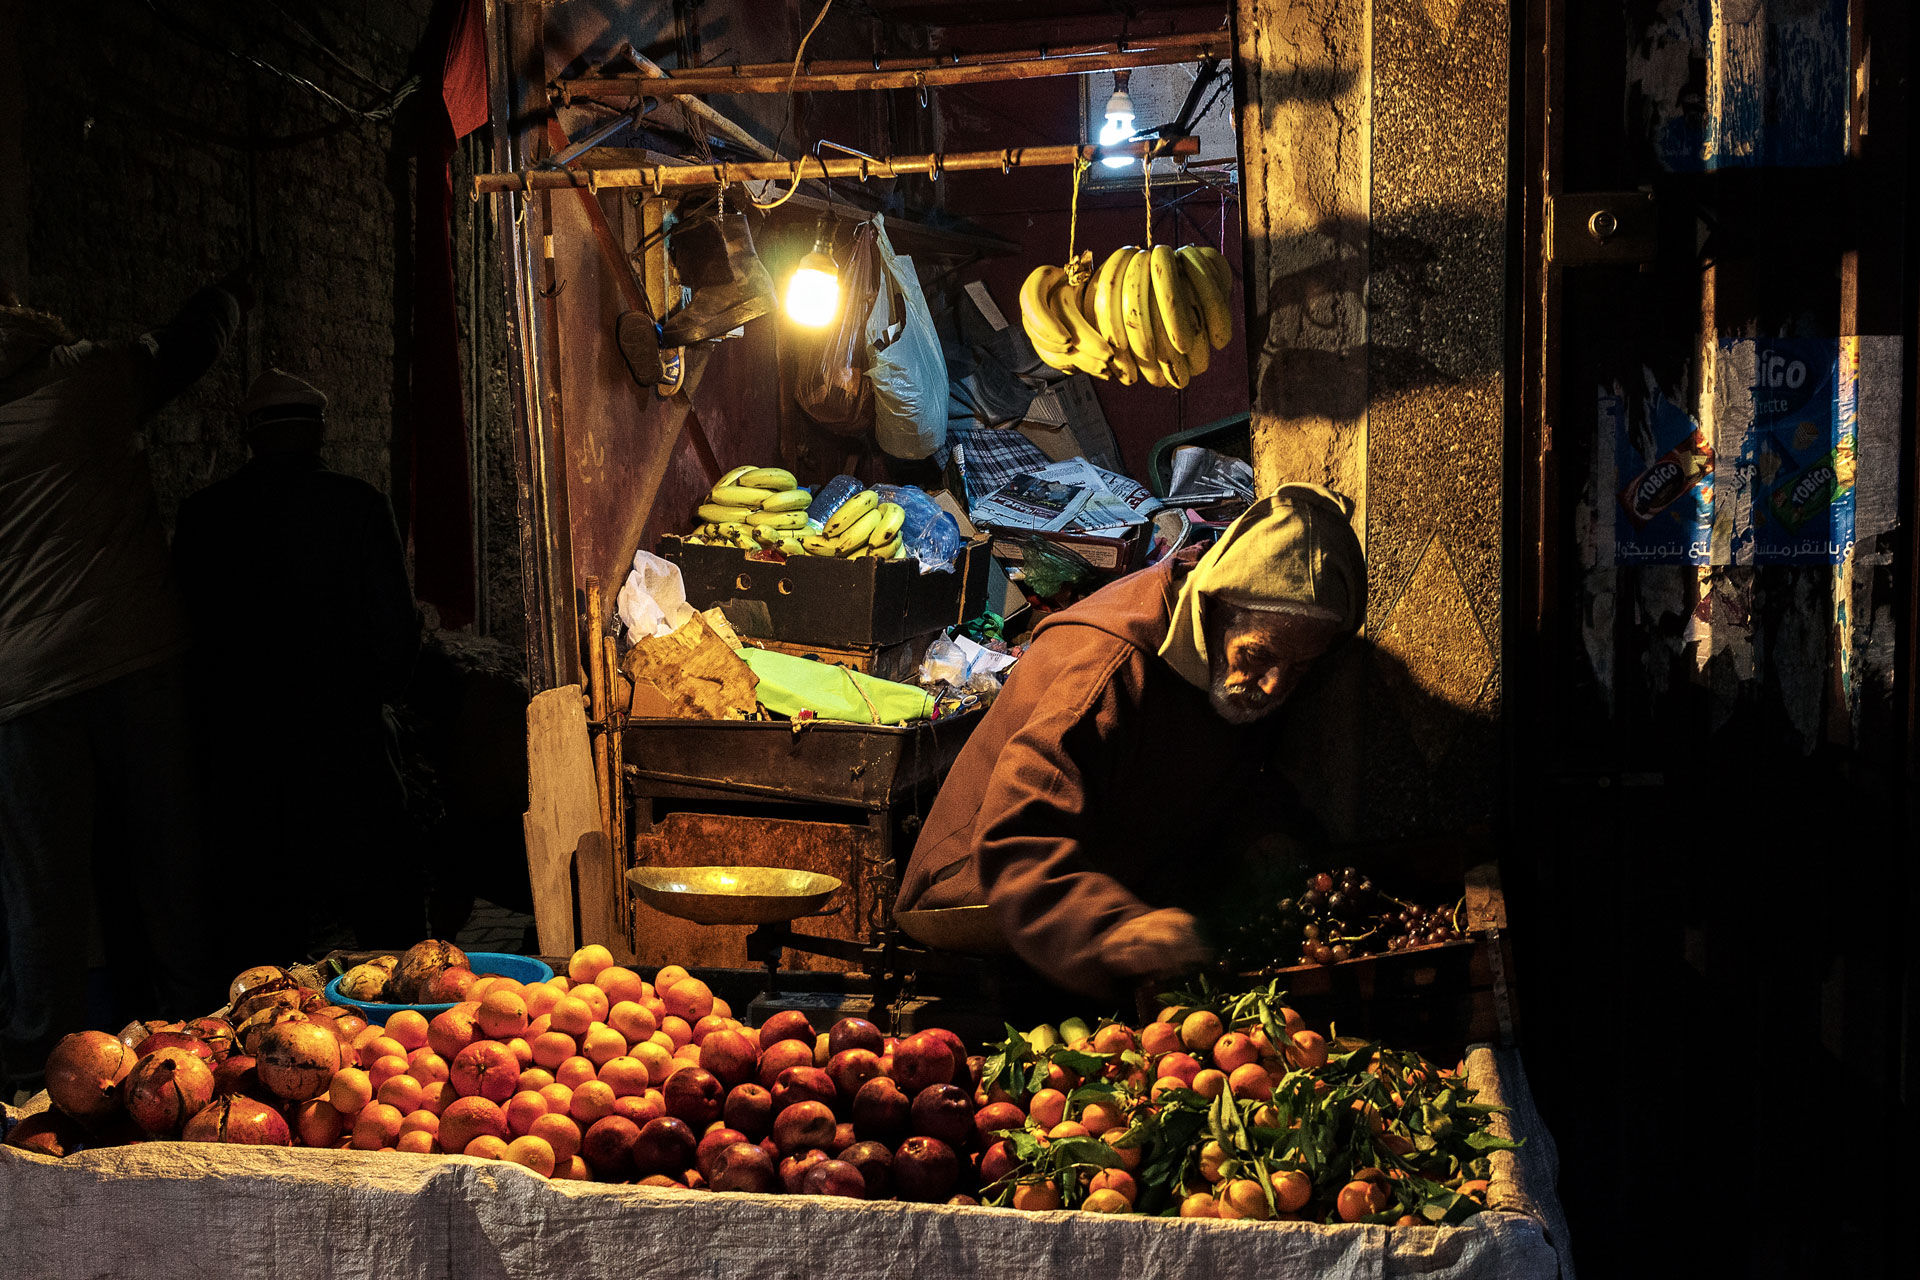 The fruit seller, like a Caravaggio...